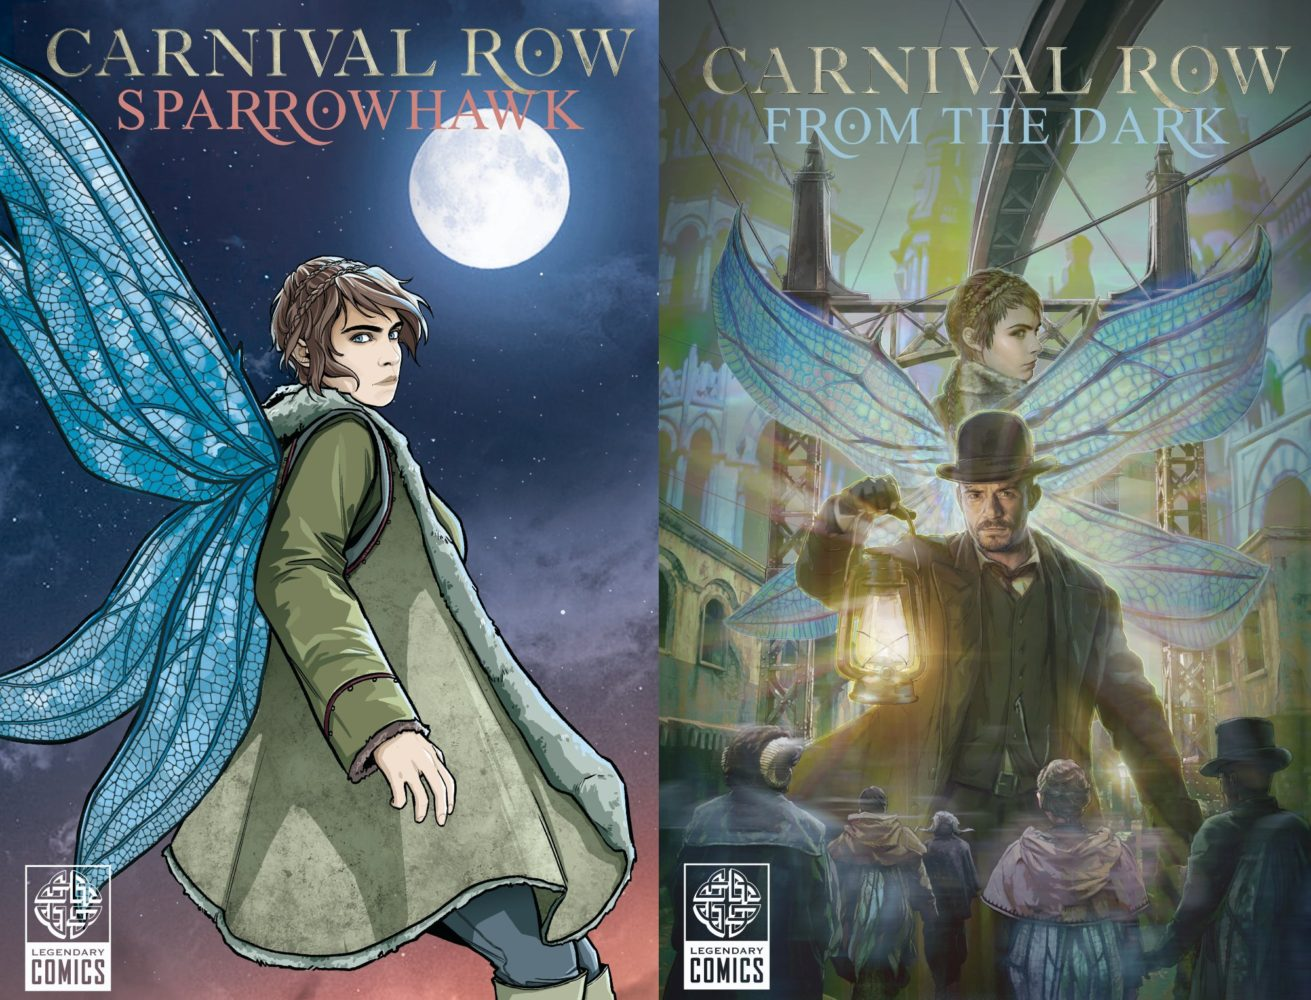 Carnival Row - Legendary Comics